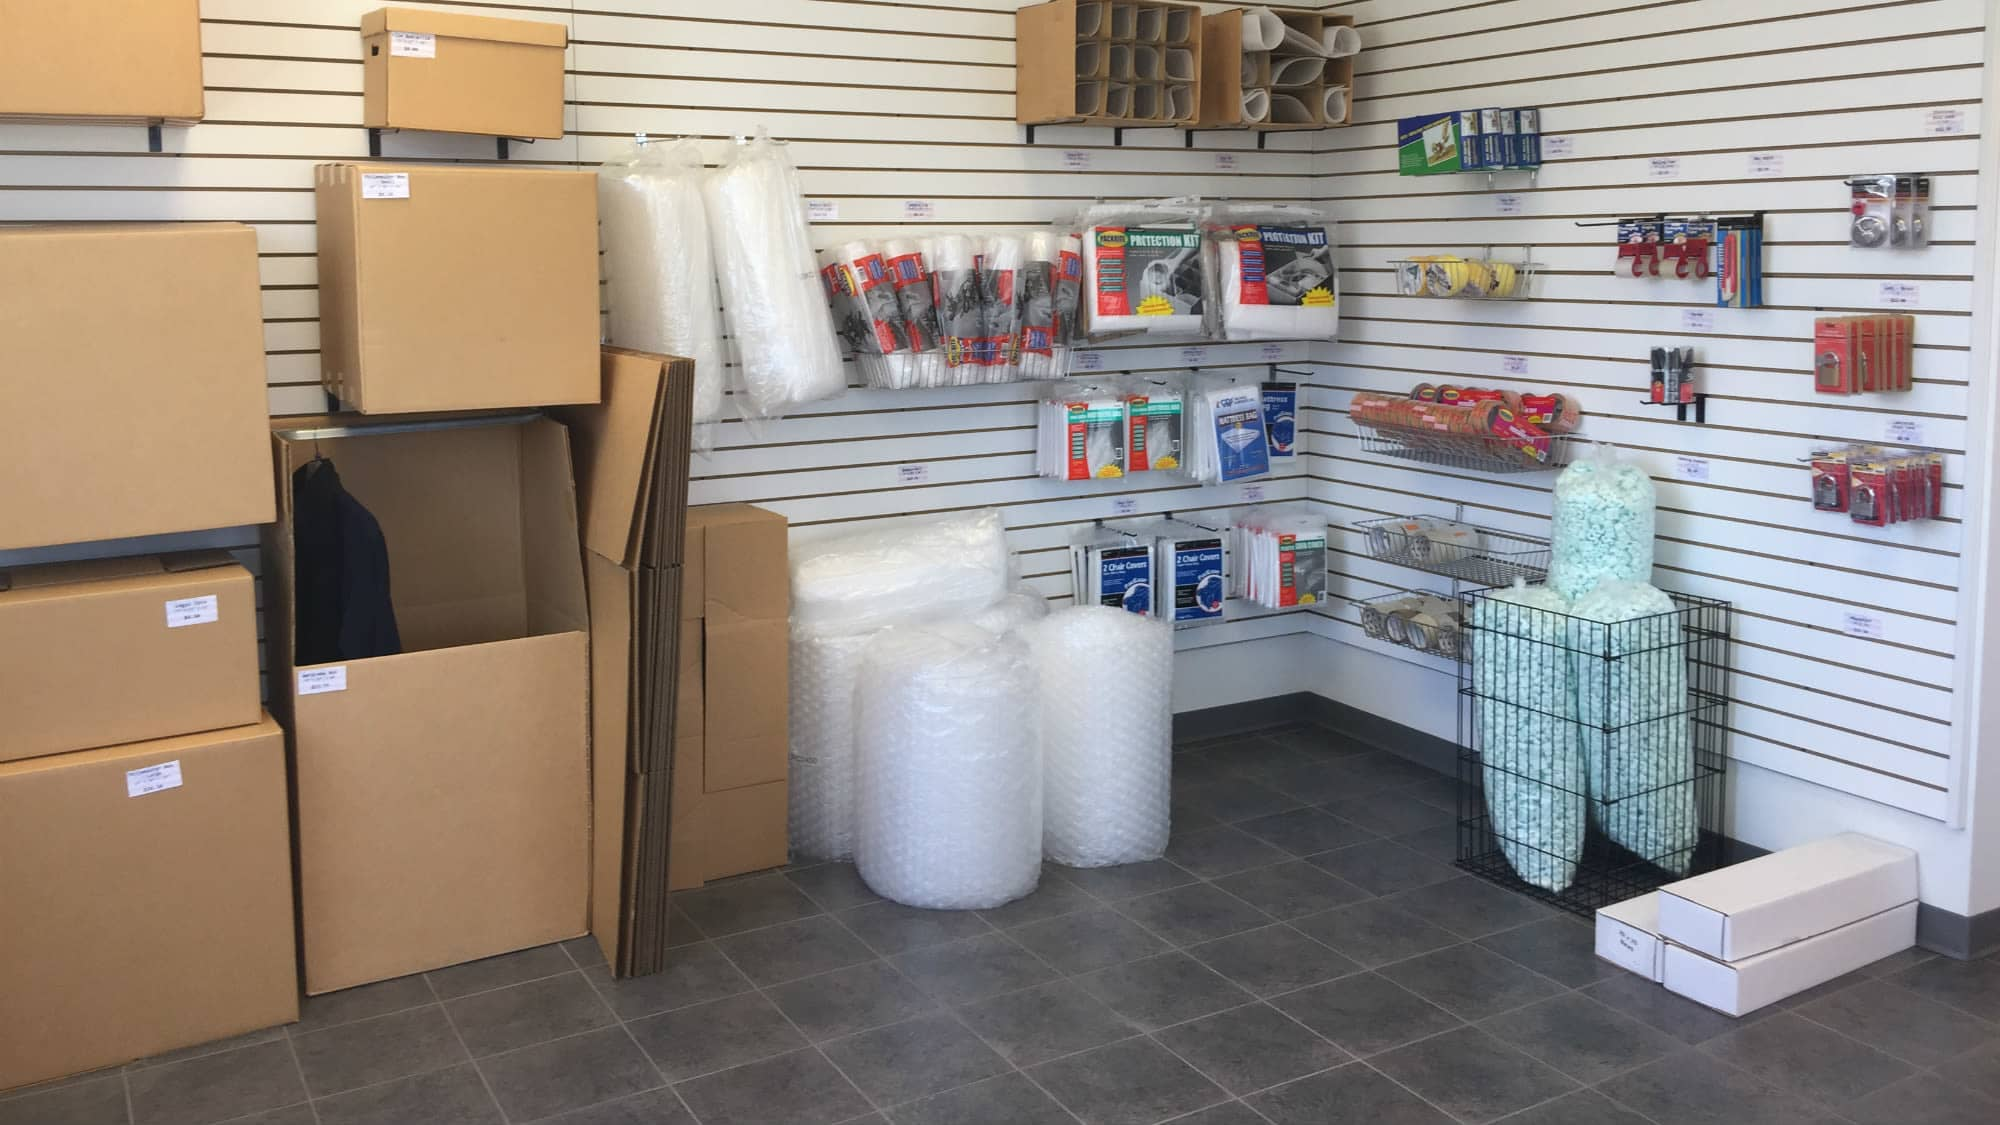 Packing and moving supplies for sale at Self Storage Plus in La Plata, MD